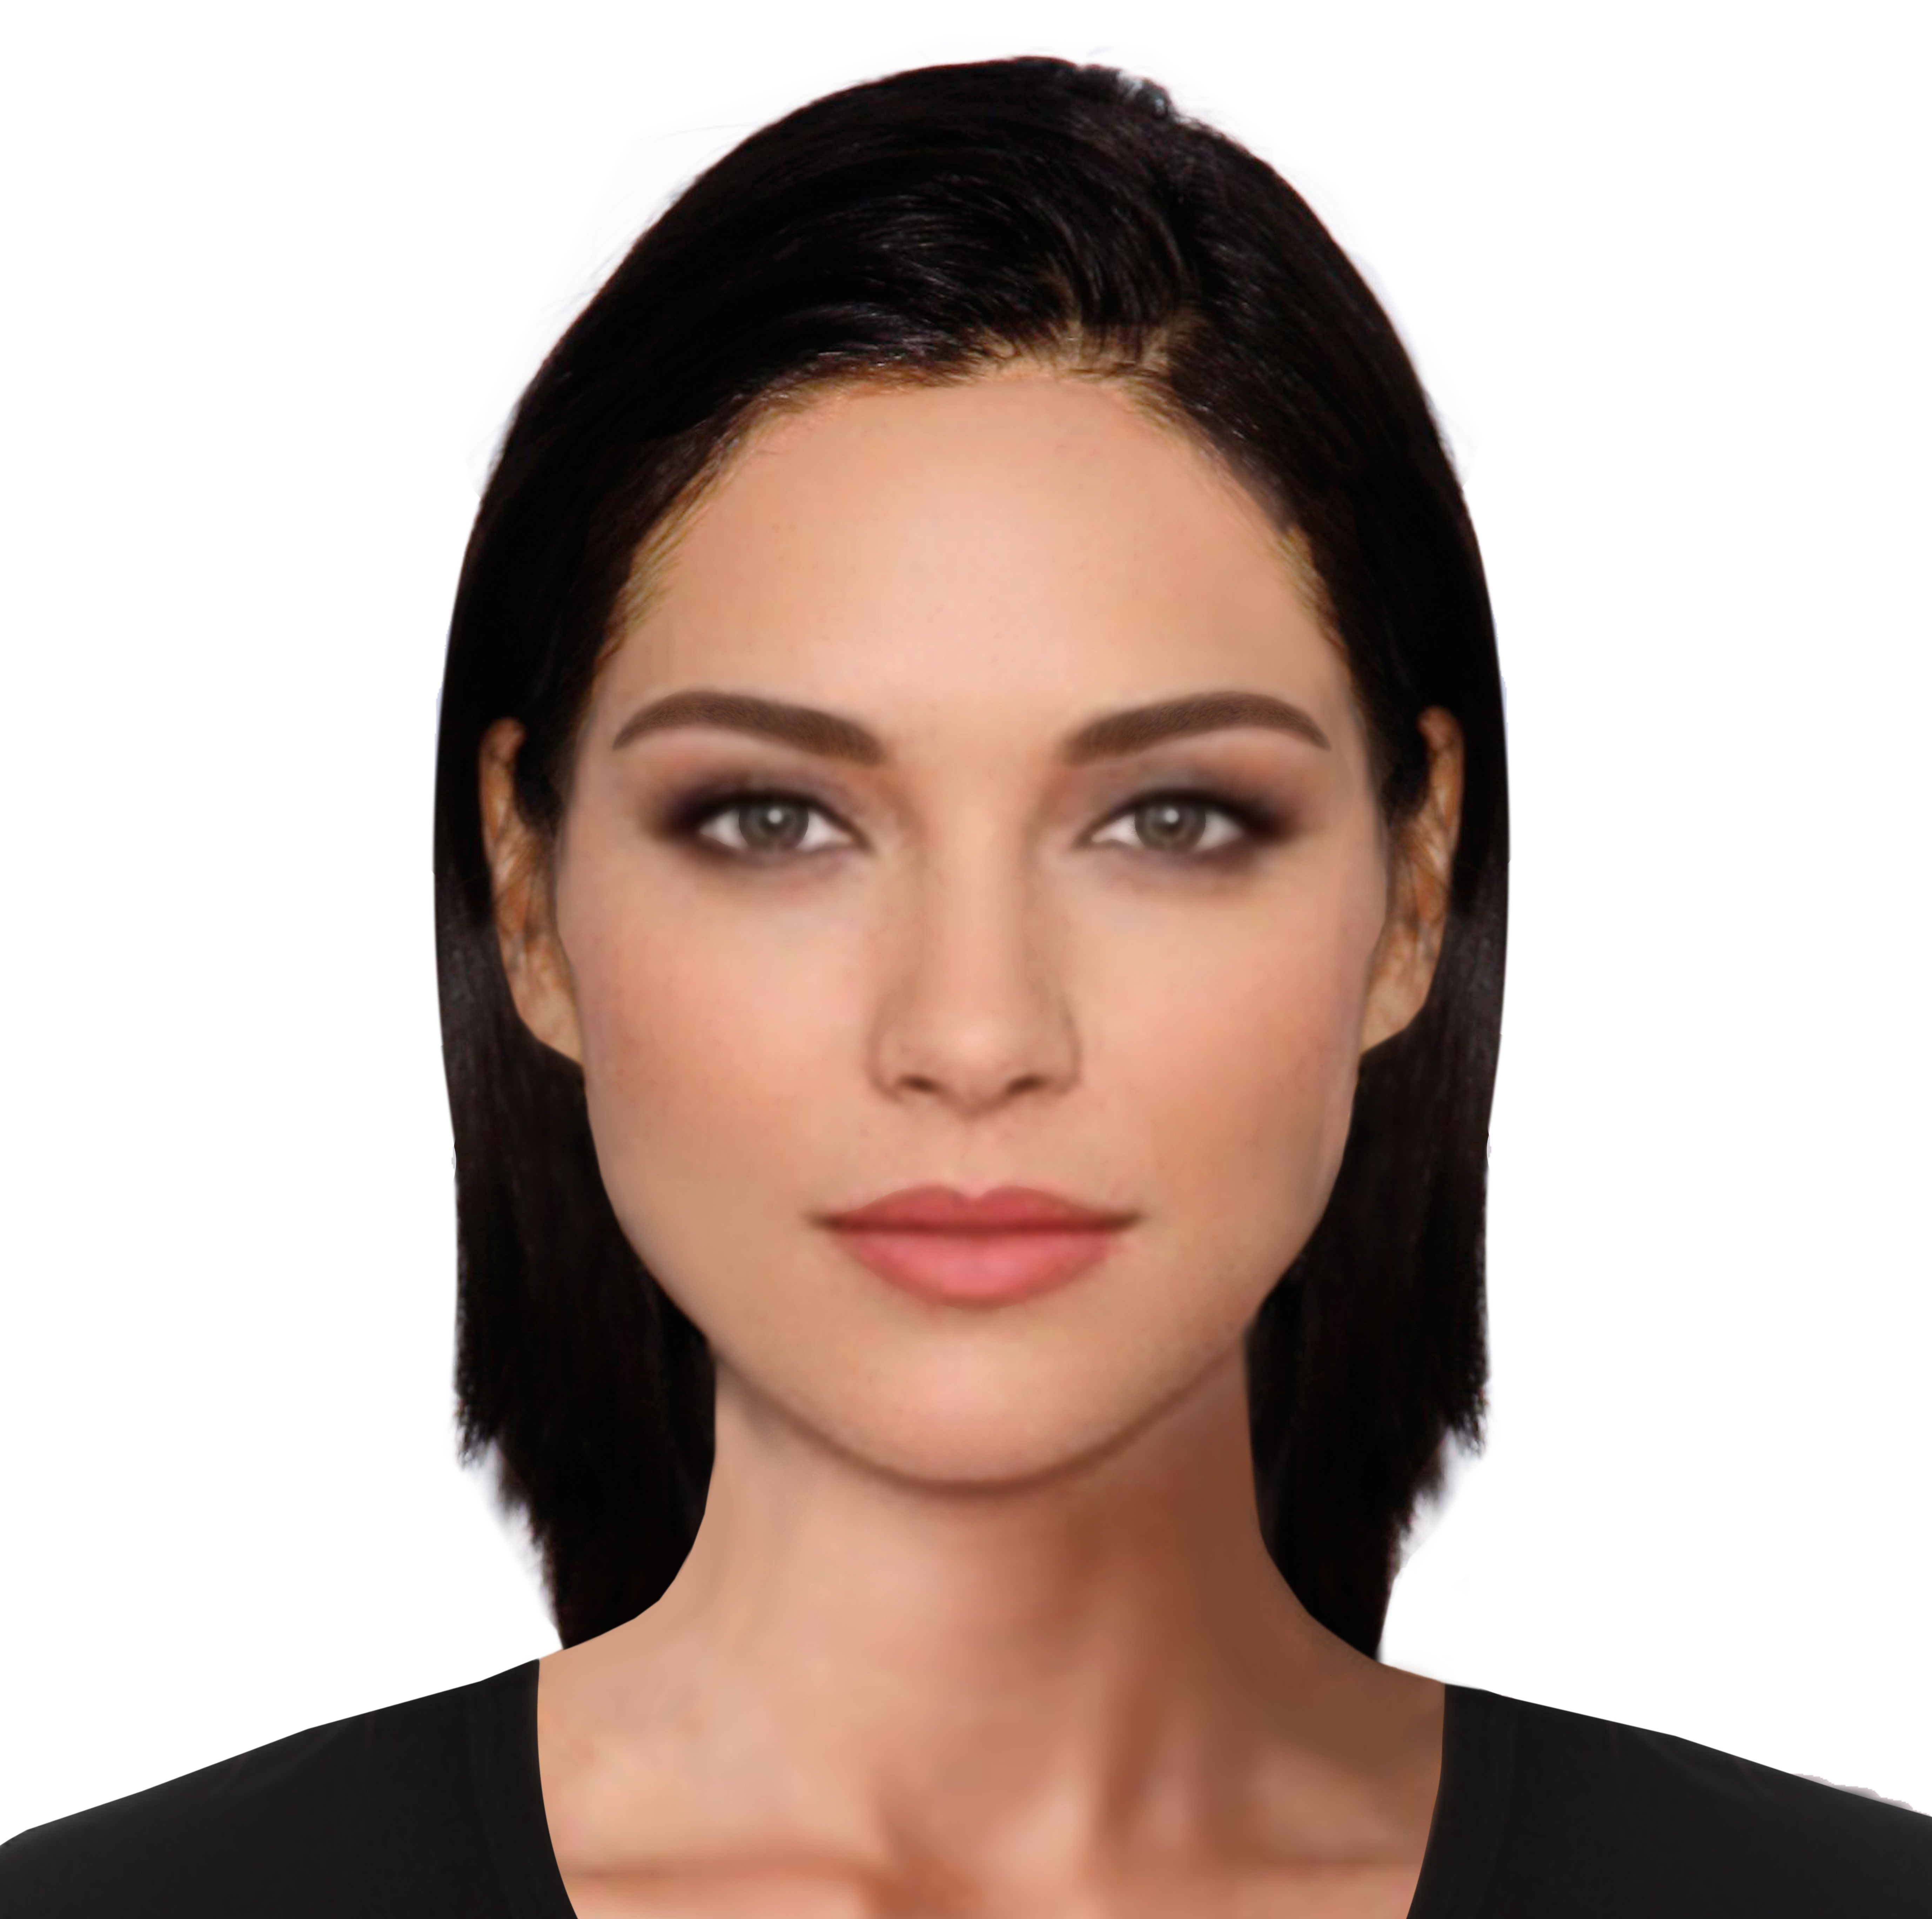 Face Template: Woman